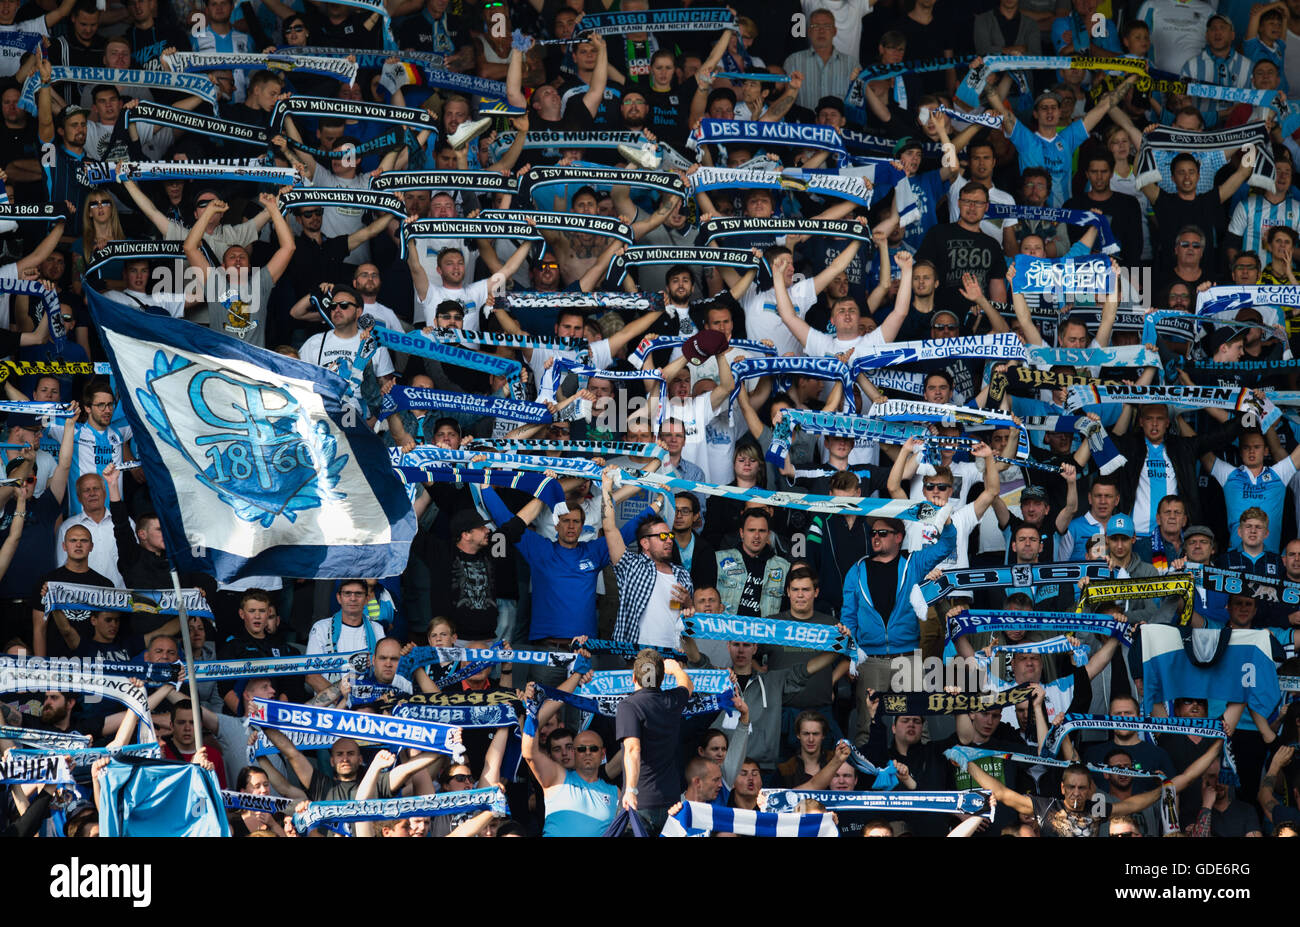 Munich, Germany. 16th July, 2016. Supporters of the second divison team TSV 1860 Munich hold up their fan scarfs - Stock Image